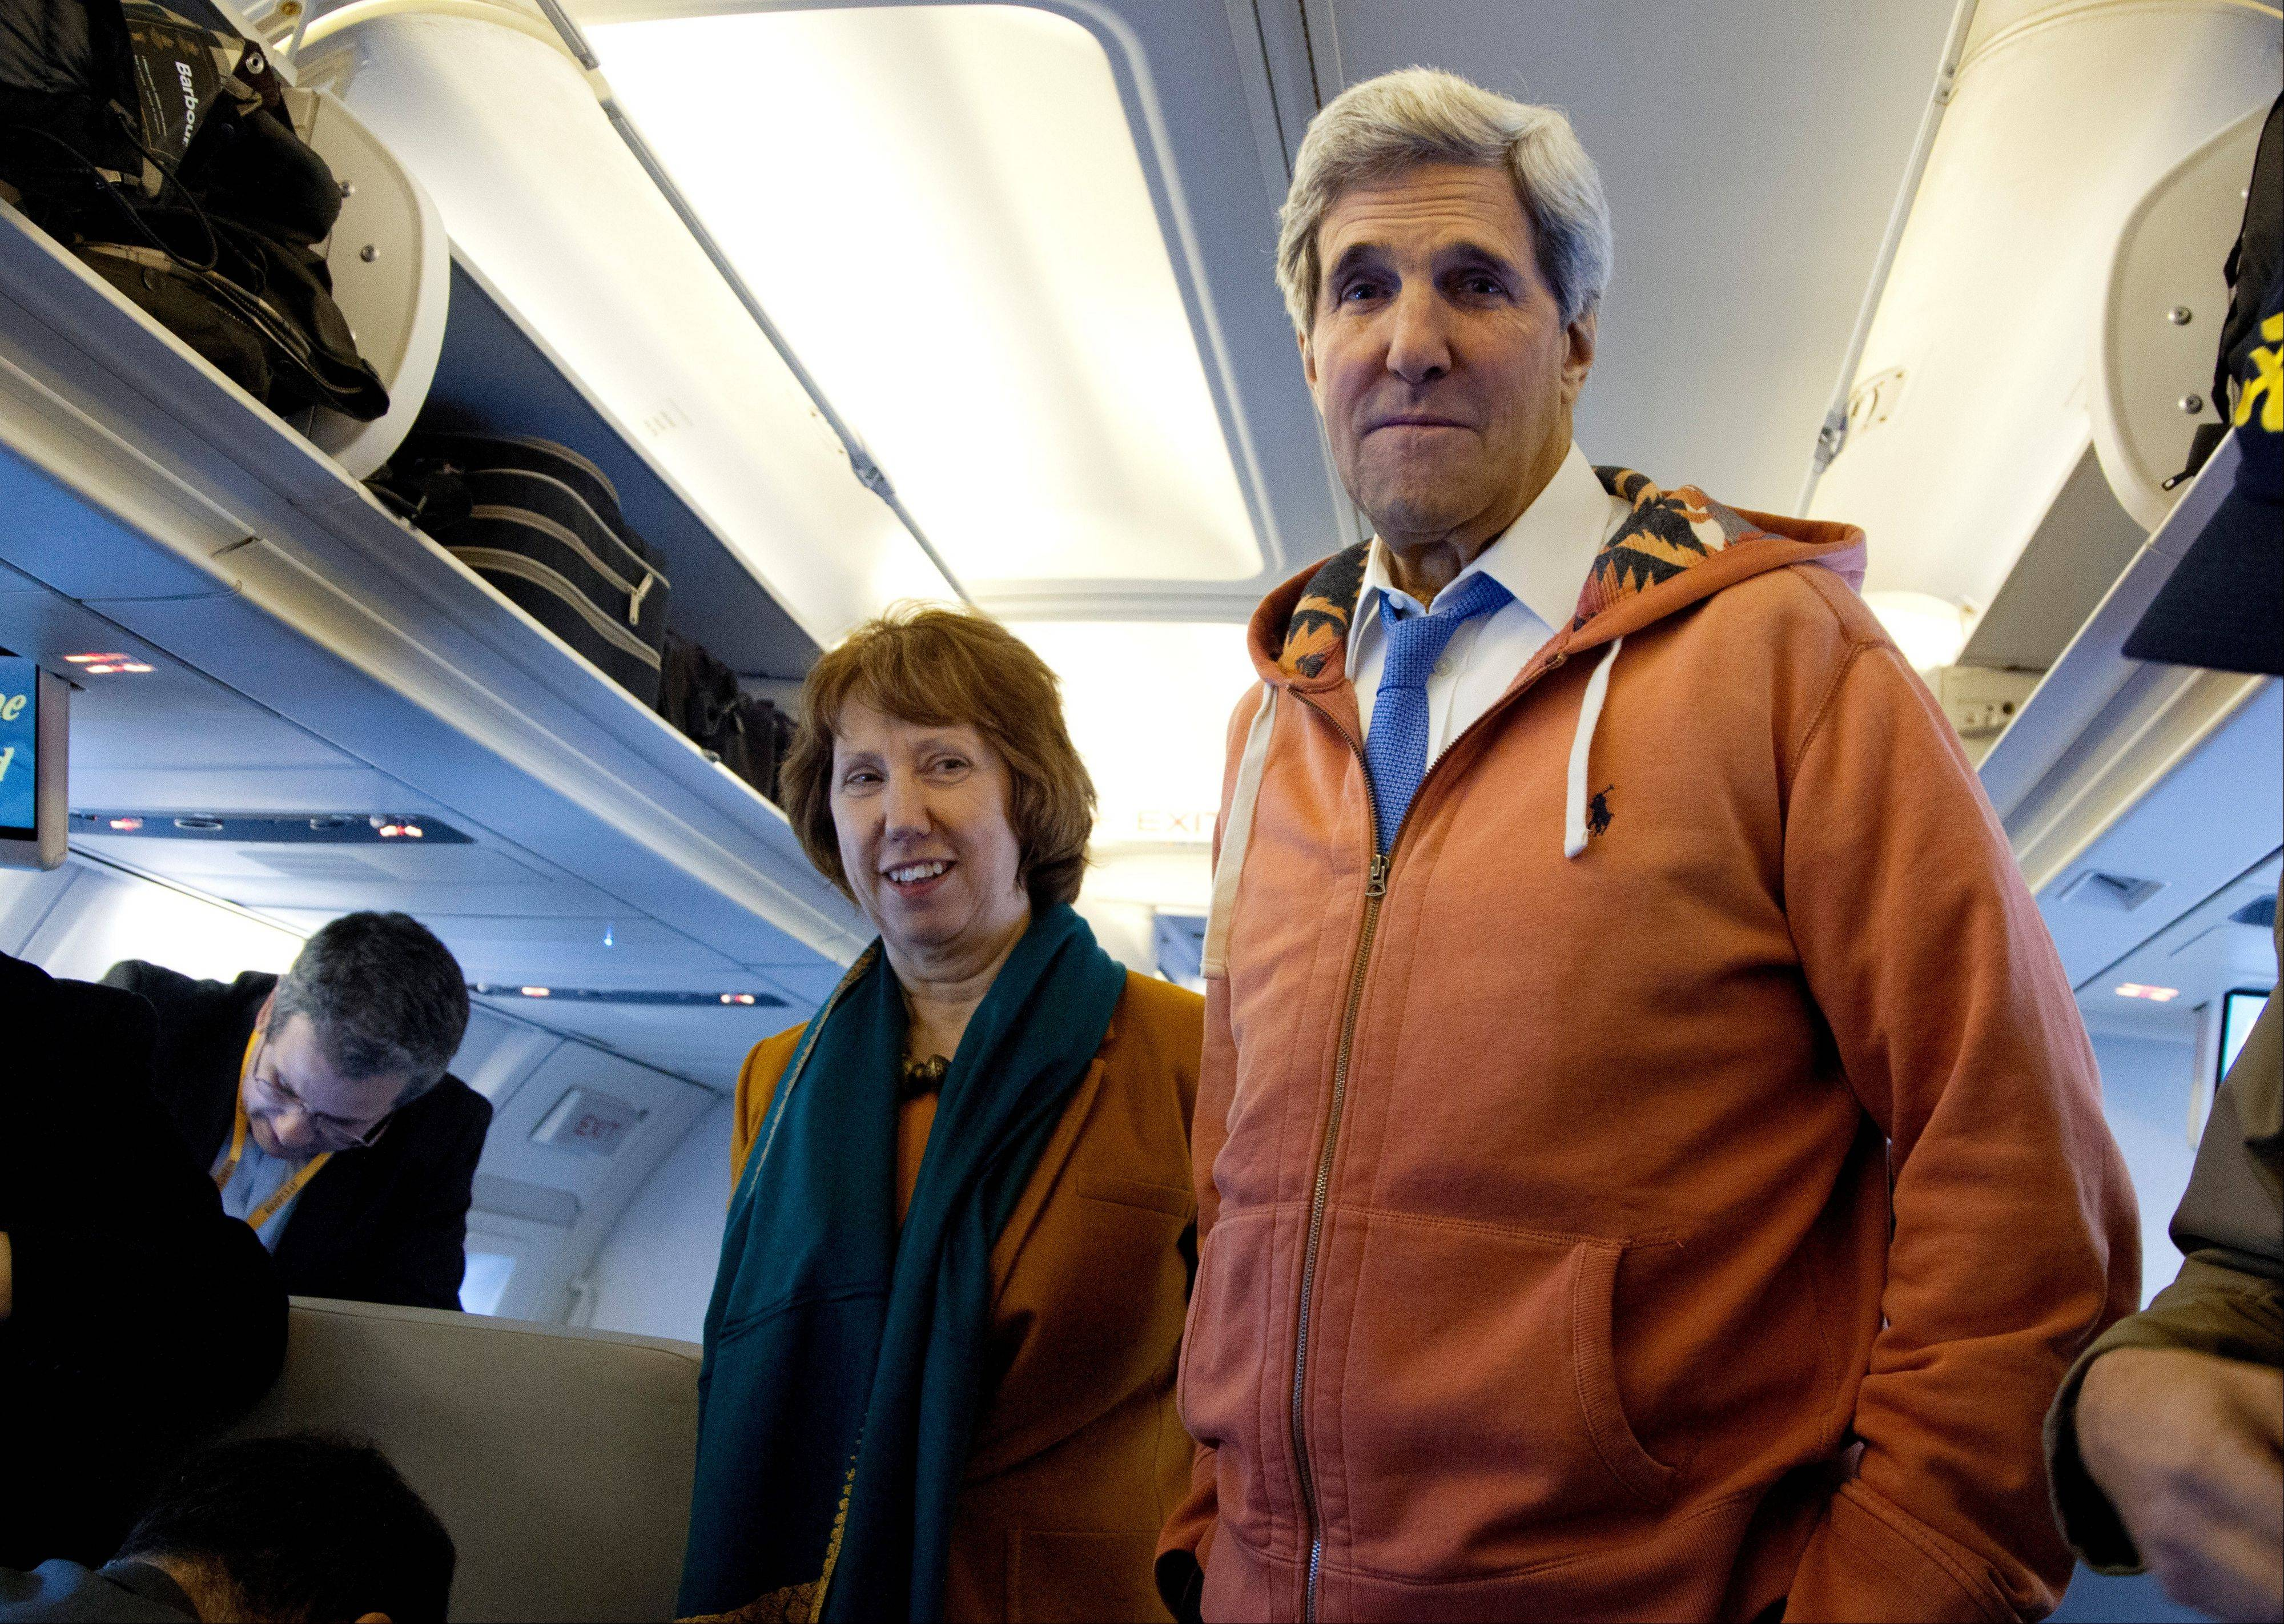 U.S. Secretary of State John Kerry, right, and EU foreign policy chief Catherine Ashton, left, visit the media seating area of Kerry�s aircraft as it sits on the tarmac at Geneva International airport before leaving for London, Sunday, in Geneva, Switzerland. A deal has been reached between six world powers and Iran that calls on Tehran to limit its nuclear activities in return for sanctions relief, the French and Iranian foreign ministers said early Sunday.